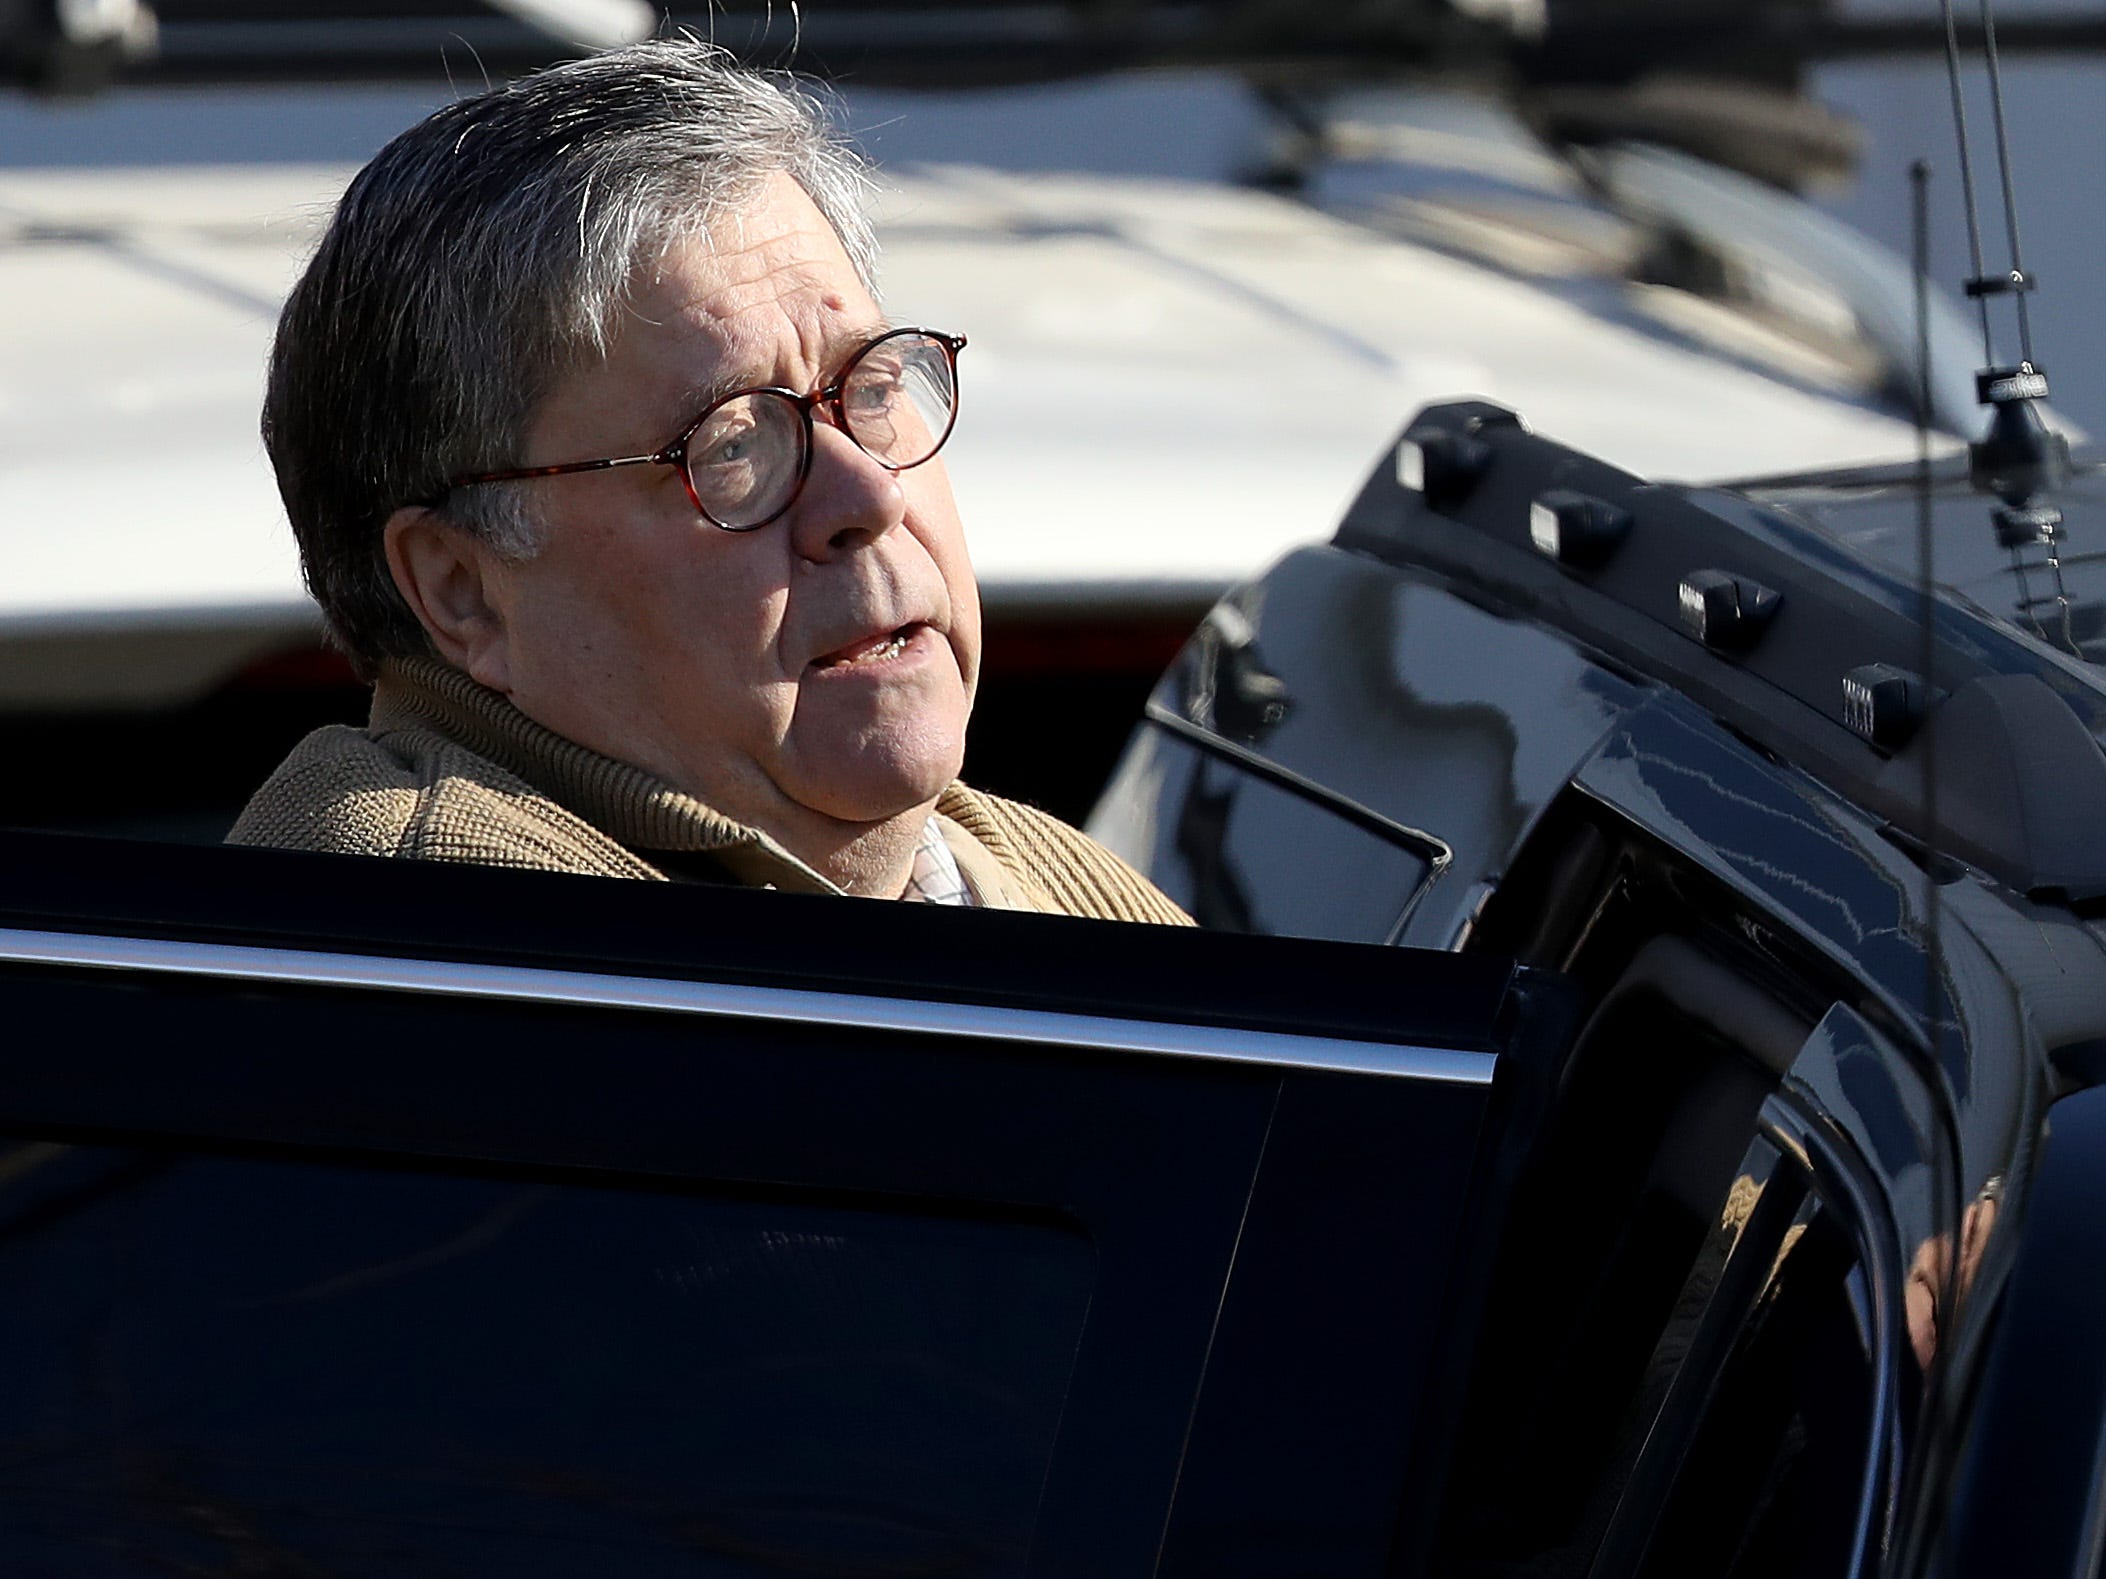 U.S. Attorney General William Barr departs his home March 23, 2019 in McLean, Virginia.  Special Counsel Robert Muellerdelivered the report from his investigation into Russian interference in the 2016 presidential election to Barr yesterday and Barr is expected to brief members of Congress on the report this weekend.